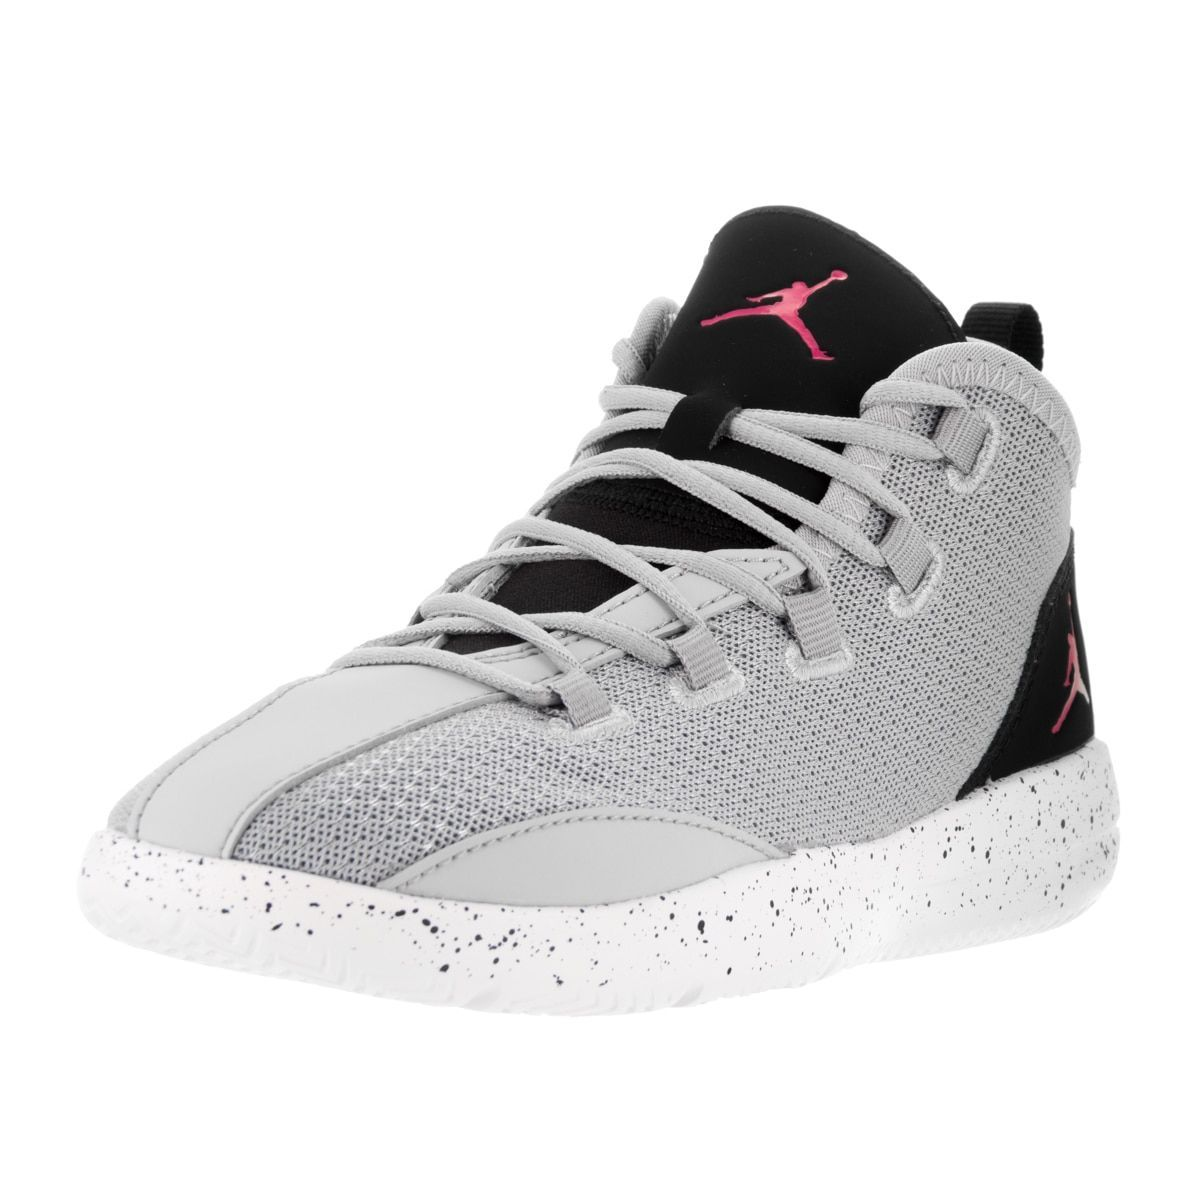 Black · Nike Jordan Kids' Jordan Reveal ...